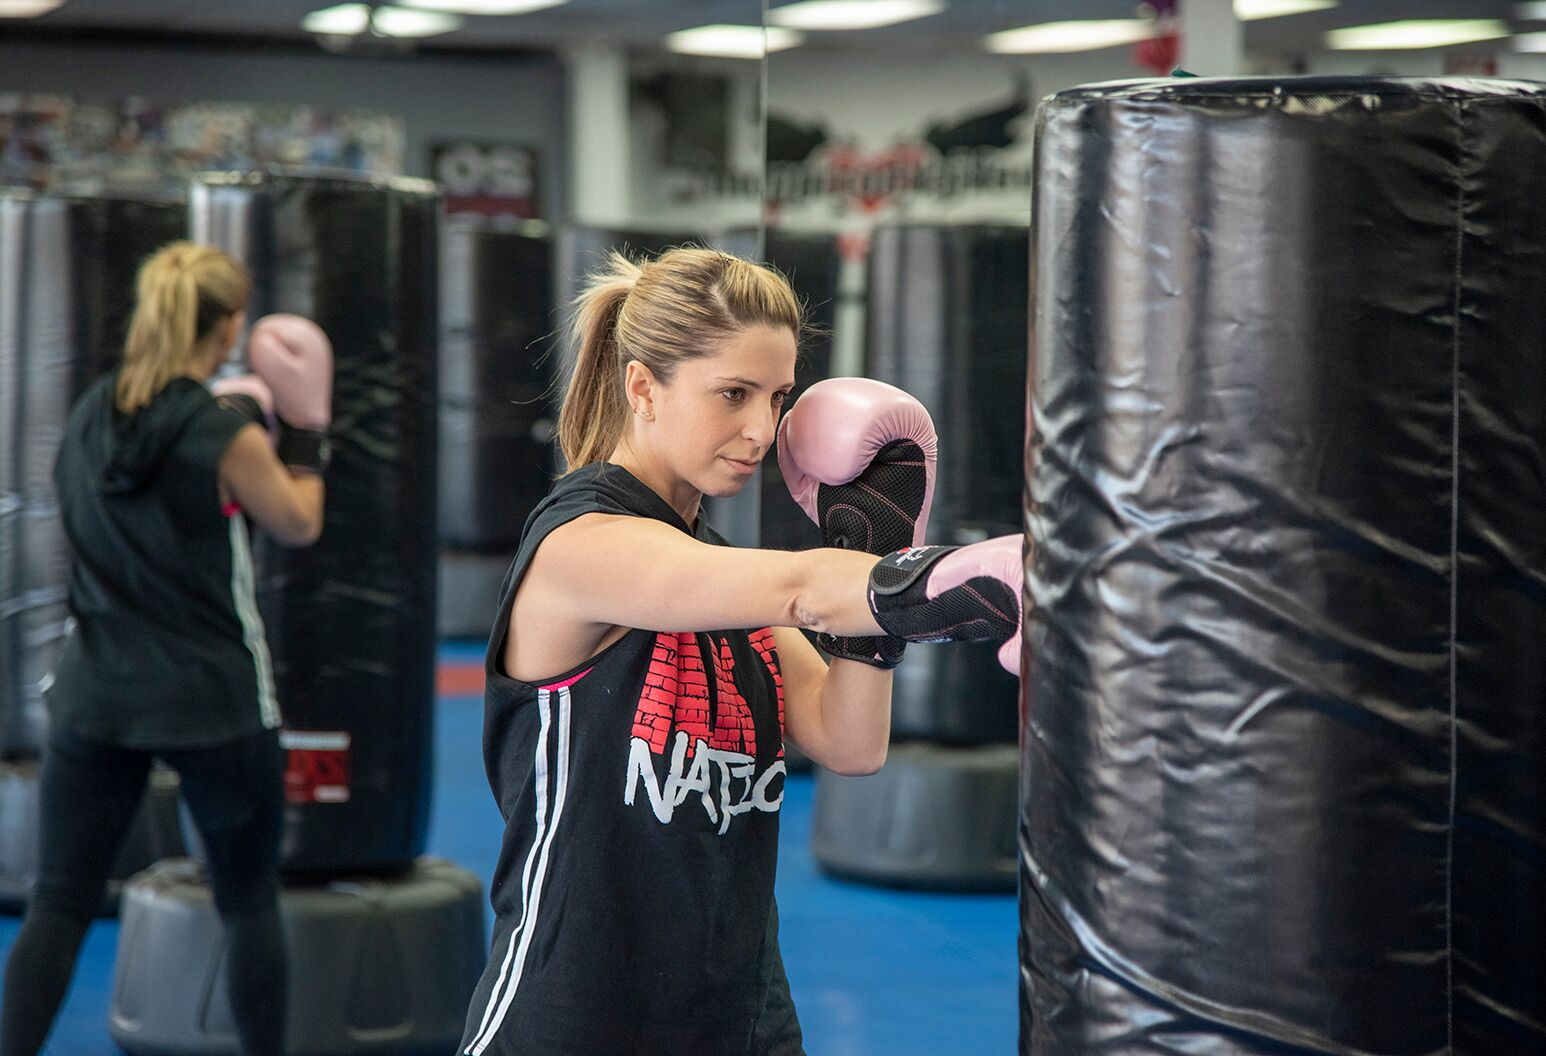 Woman in her 30s punches heavy bag in a gym.